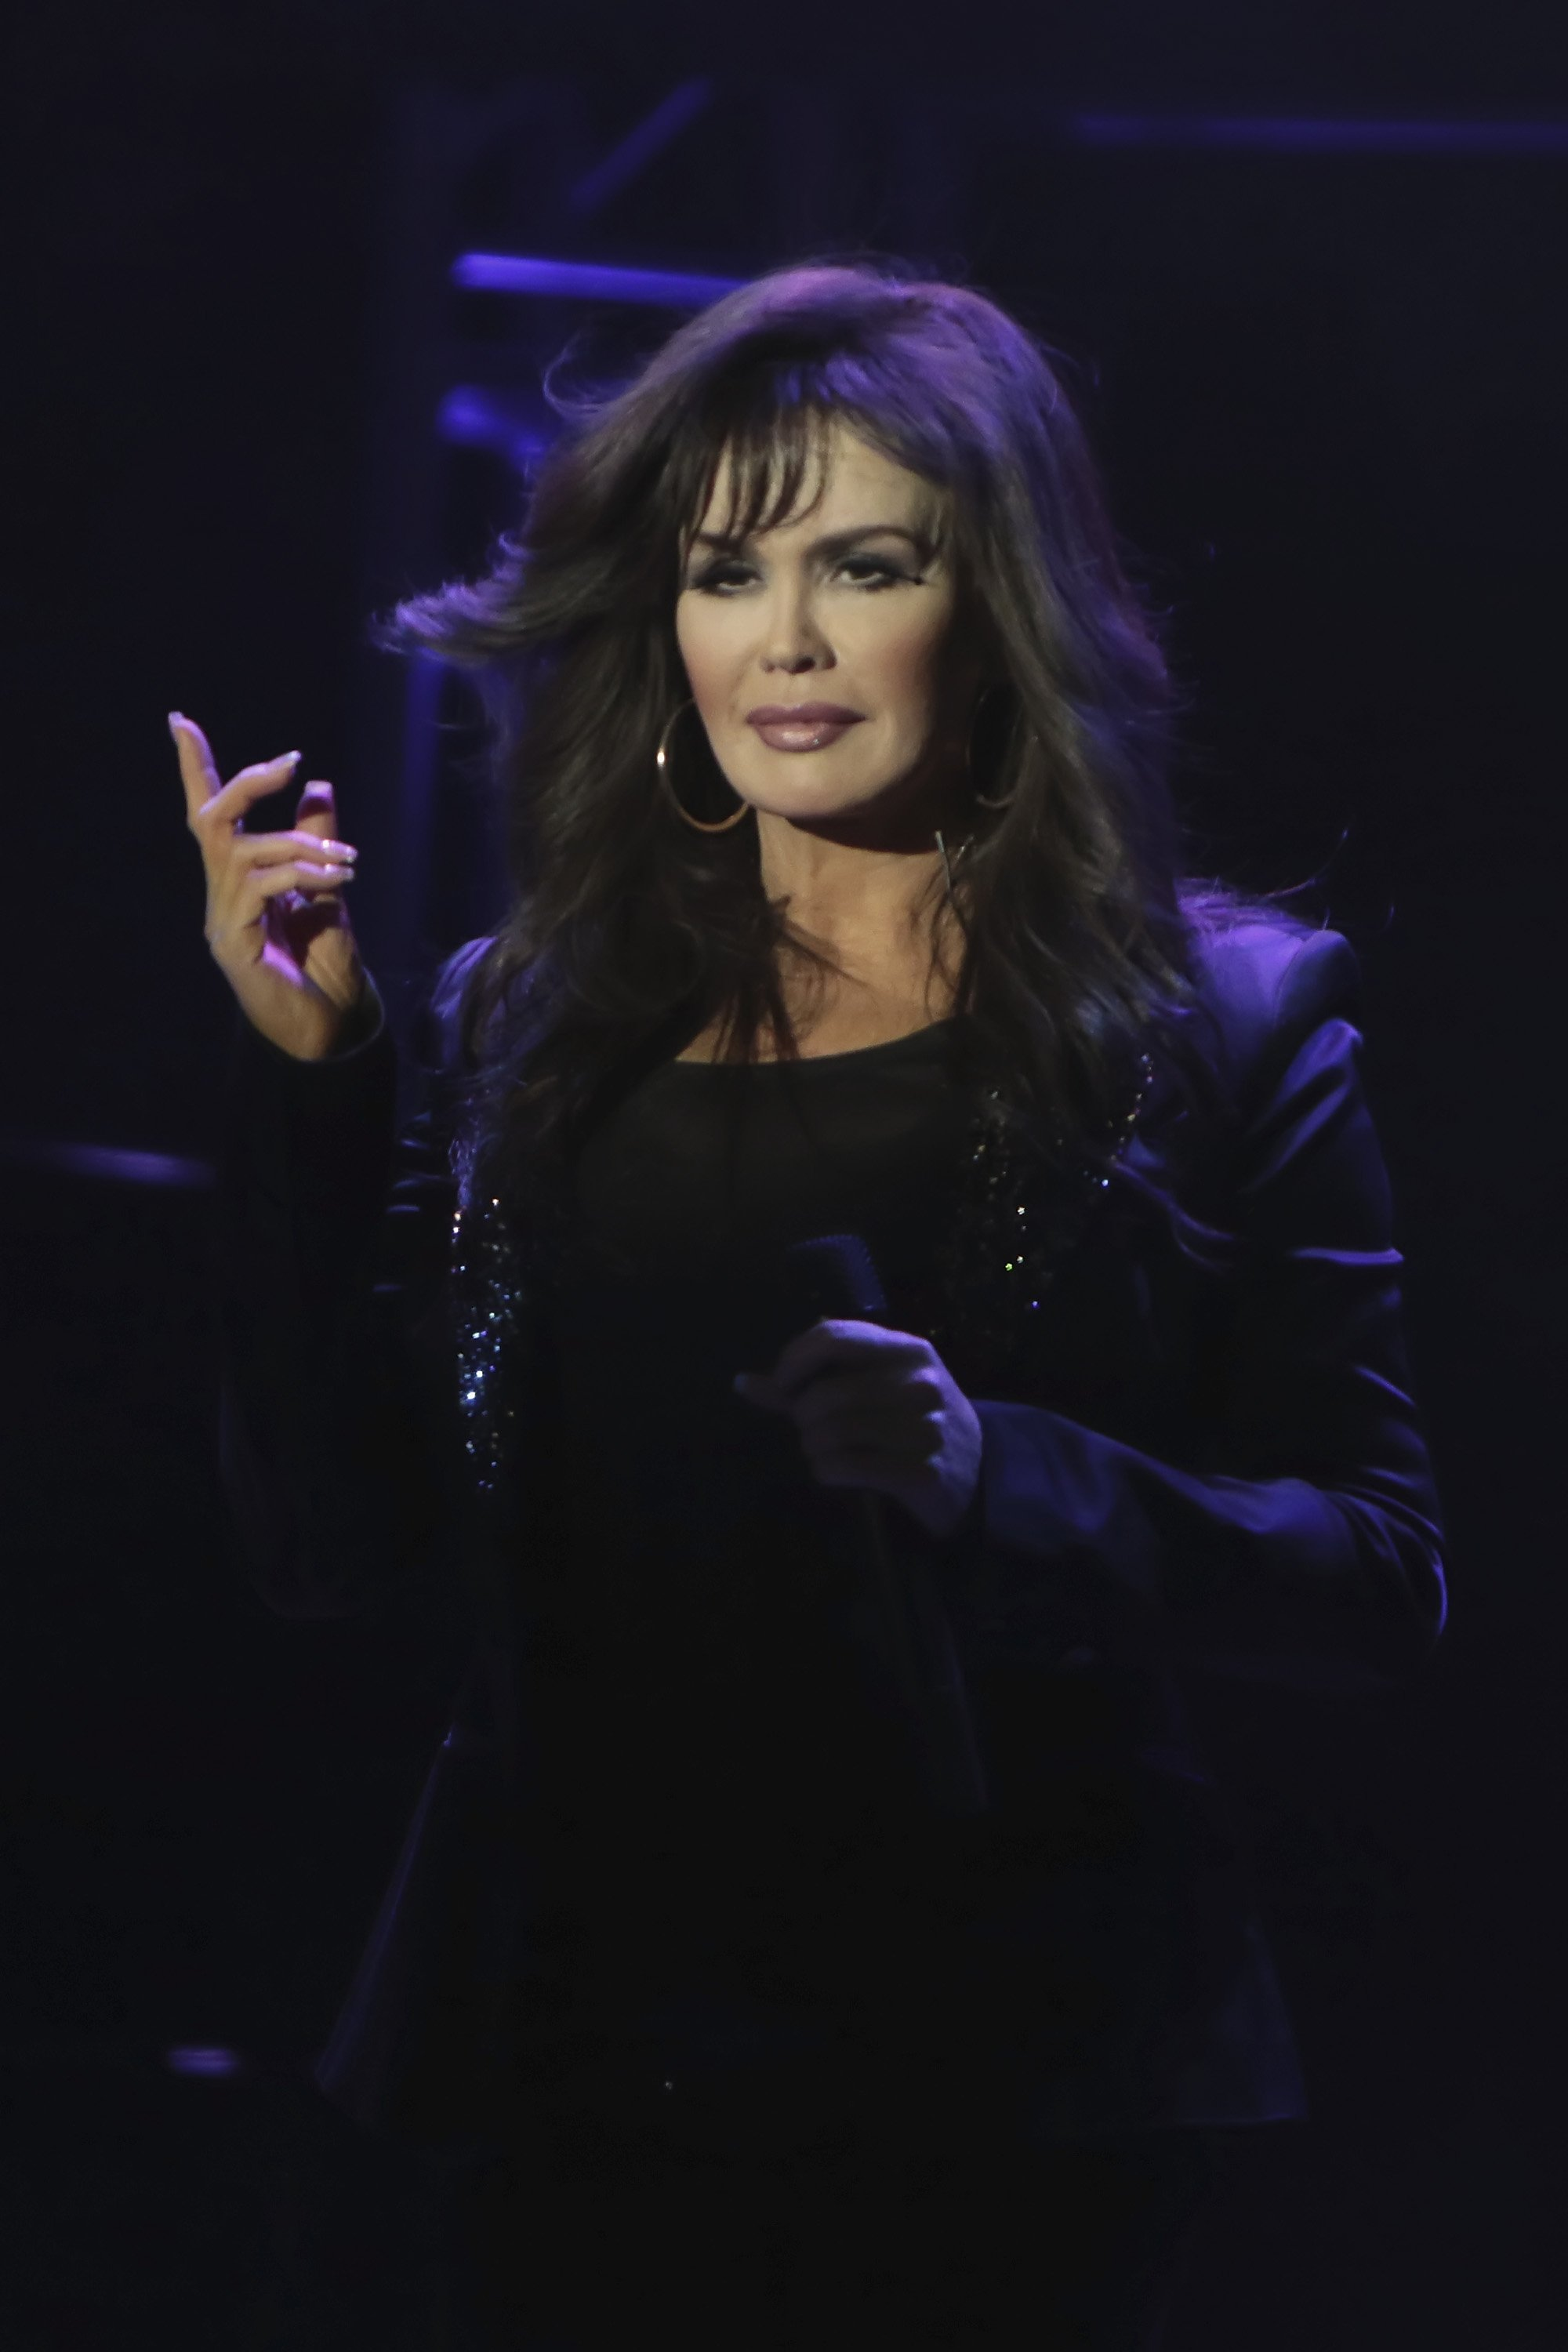 Image Credits: Getty Images / Donald Kravitz   Marie Osmond performs at Borgata Hotel Casino & Spa on March 13, 2015 in Atlantic City, New Jersey.